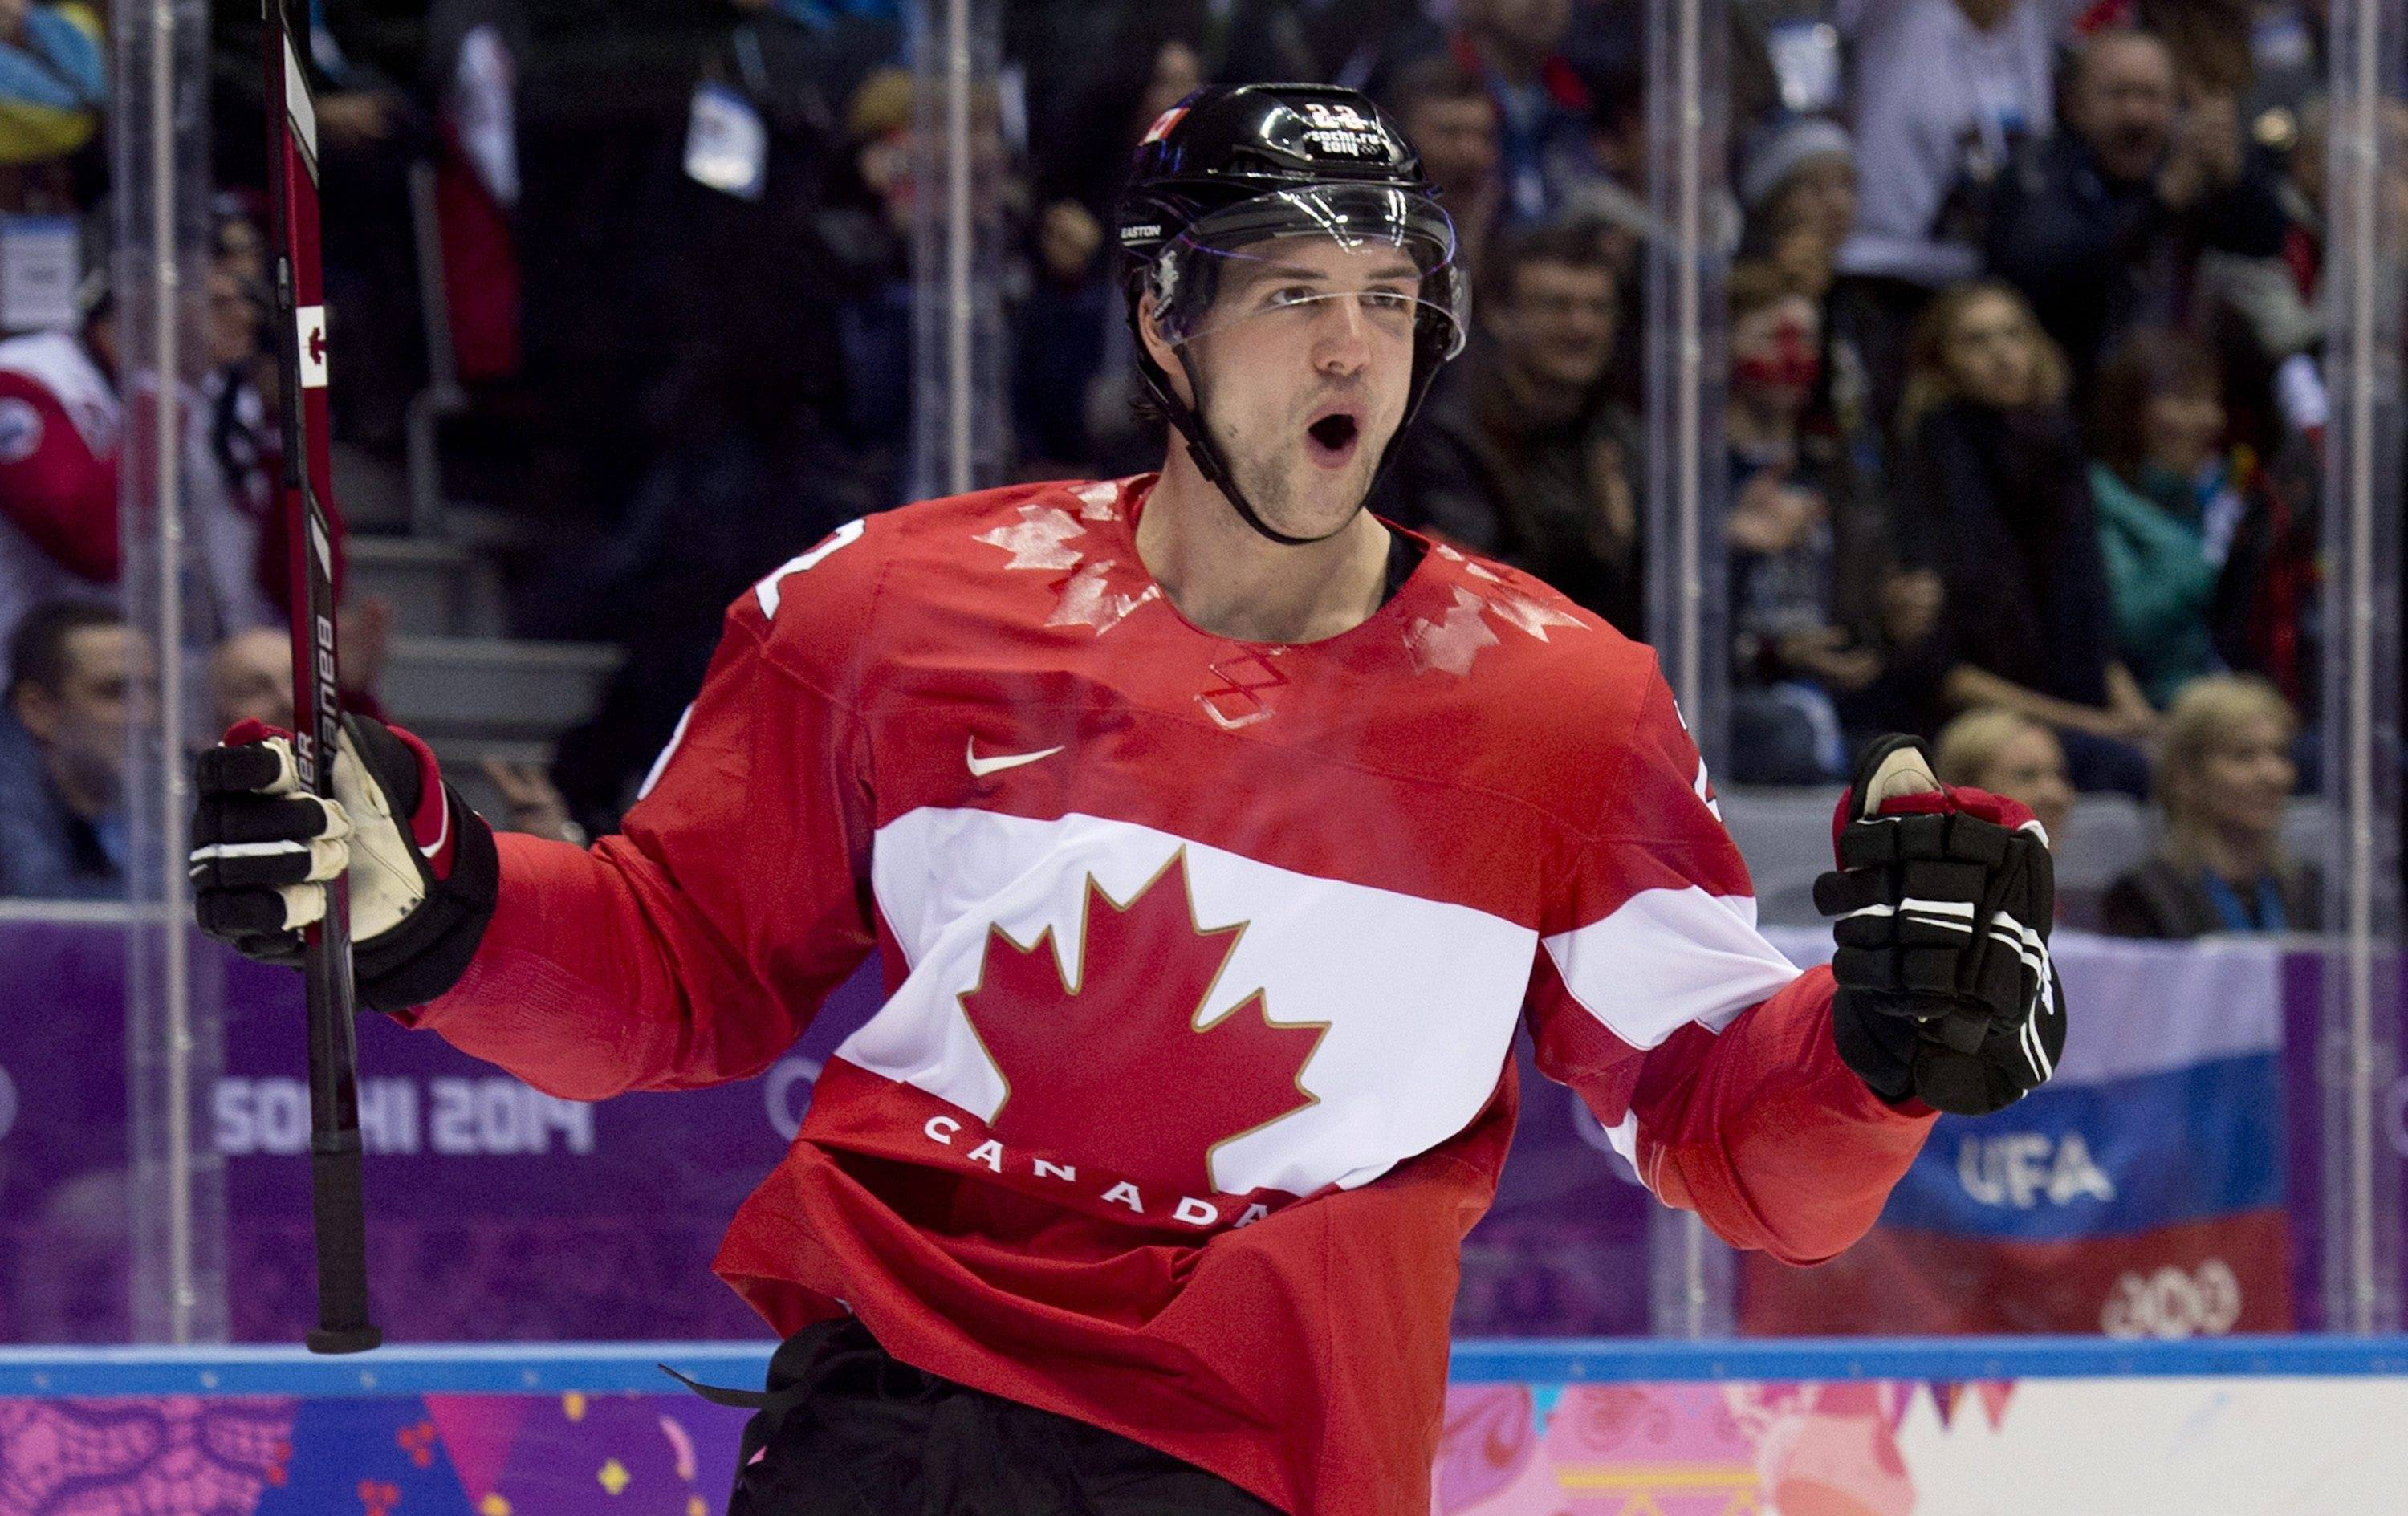 Jamie Benn of Canada celebrates his goal against the United States.